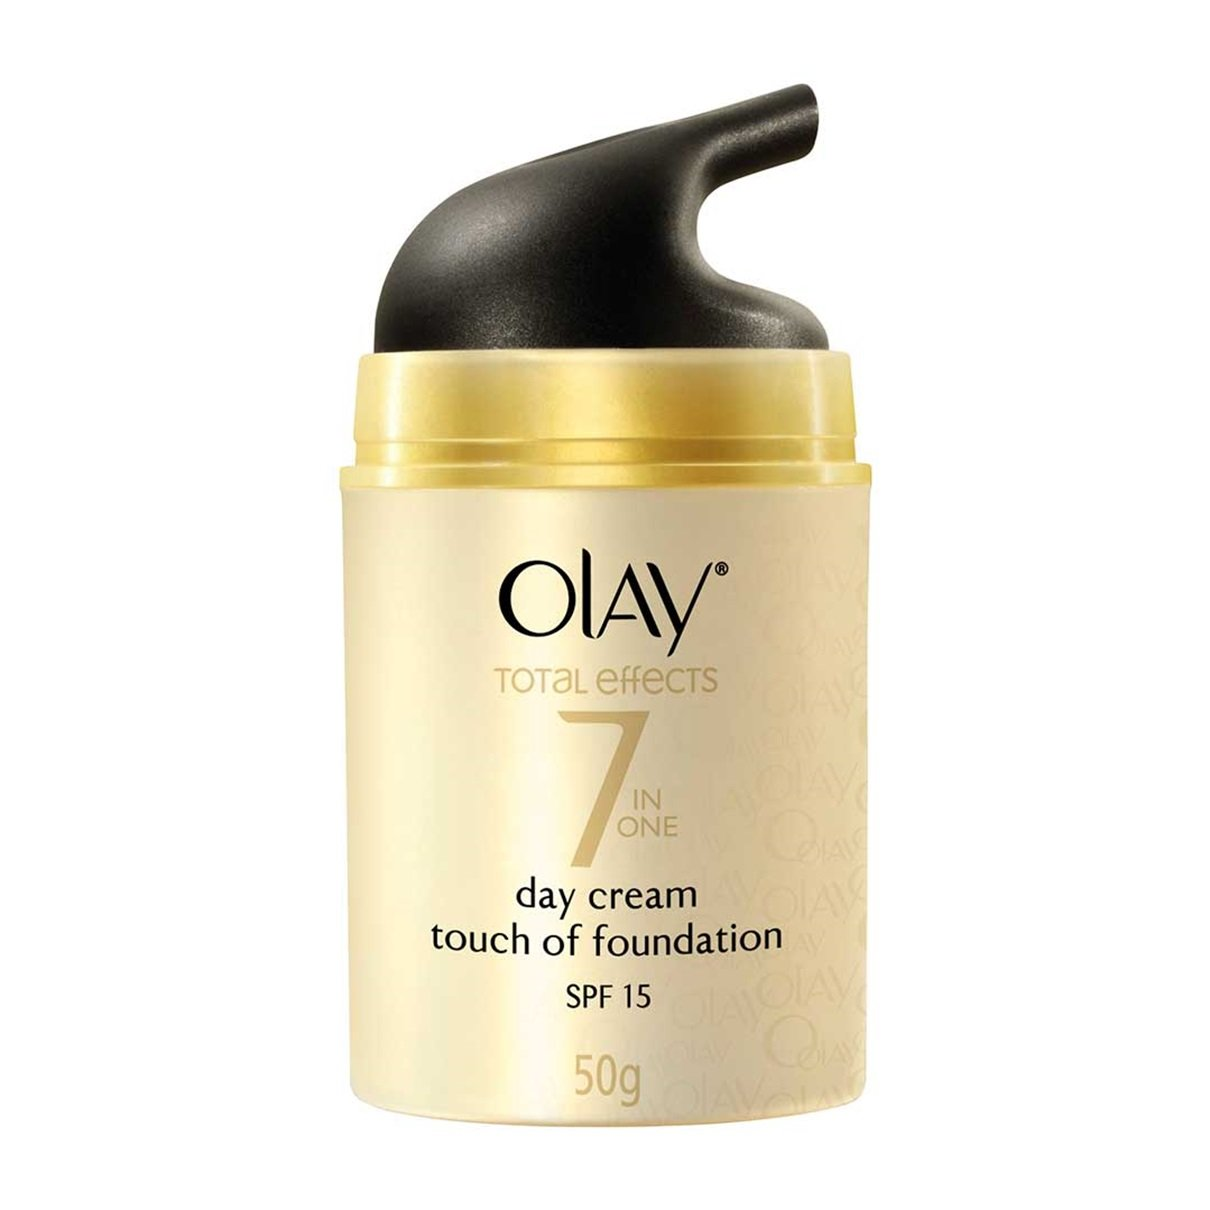 Olay Total Effects 7 In One Day Cream Touch of Foundation (SPF 15) - 50g